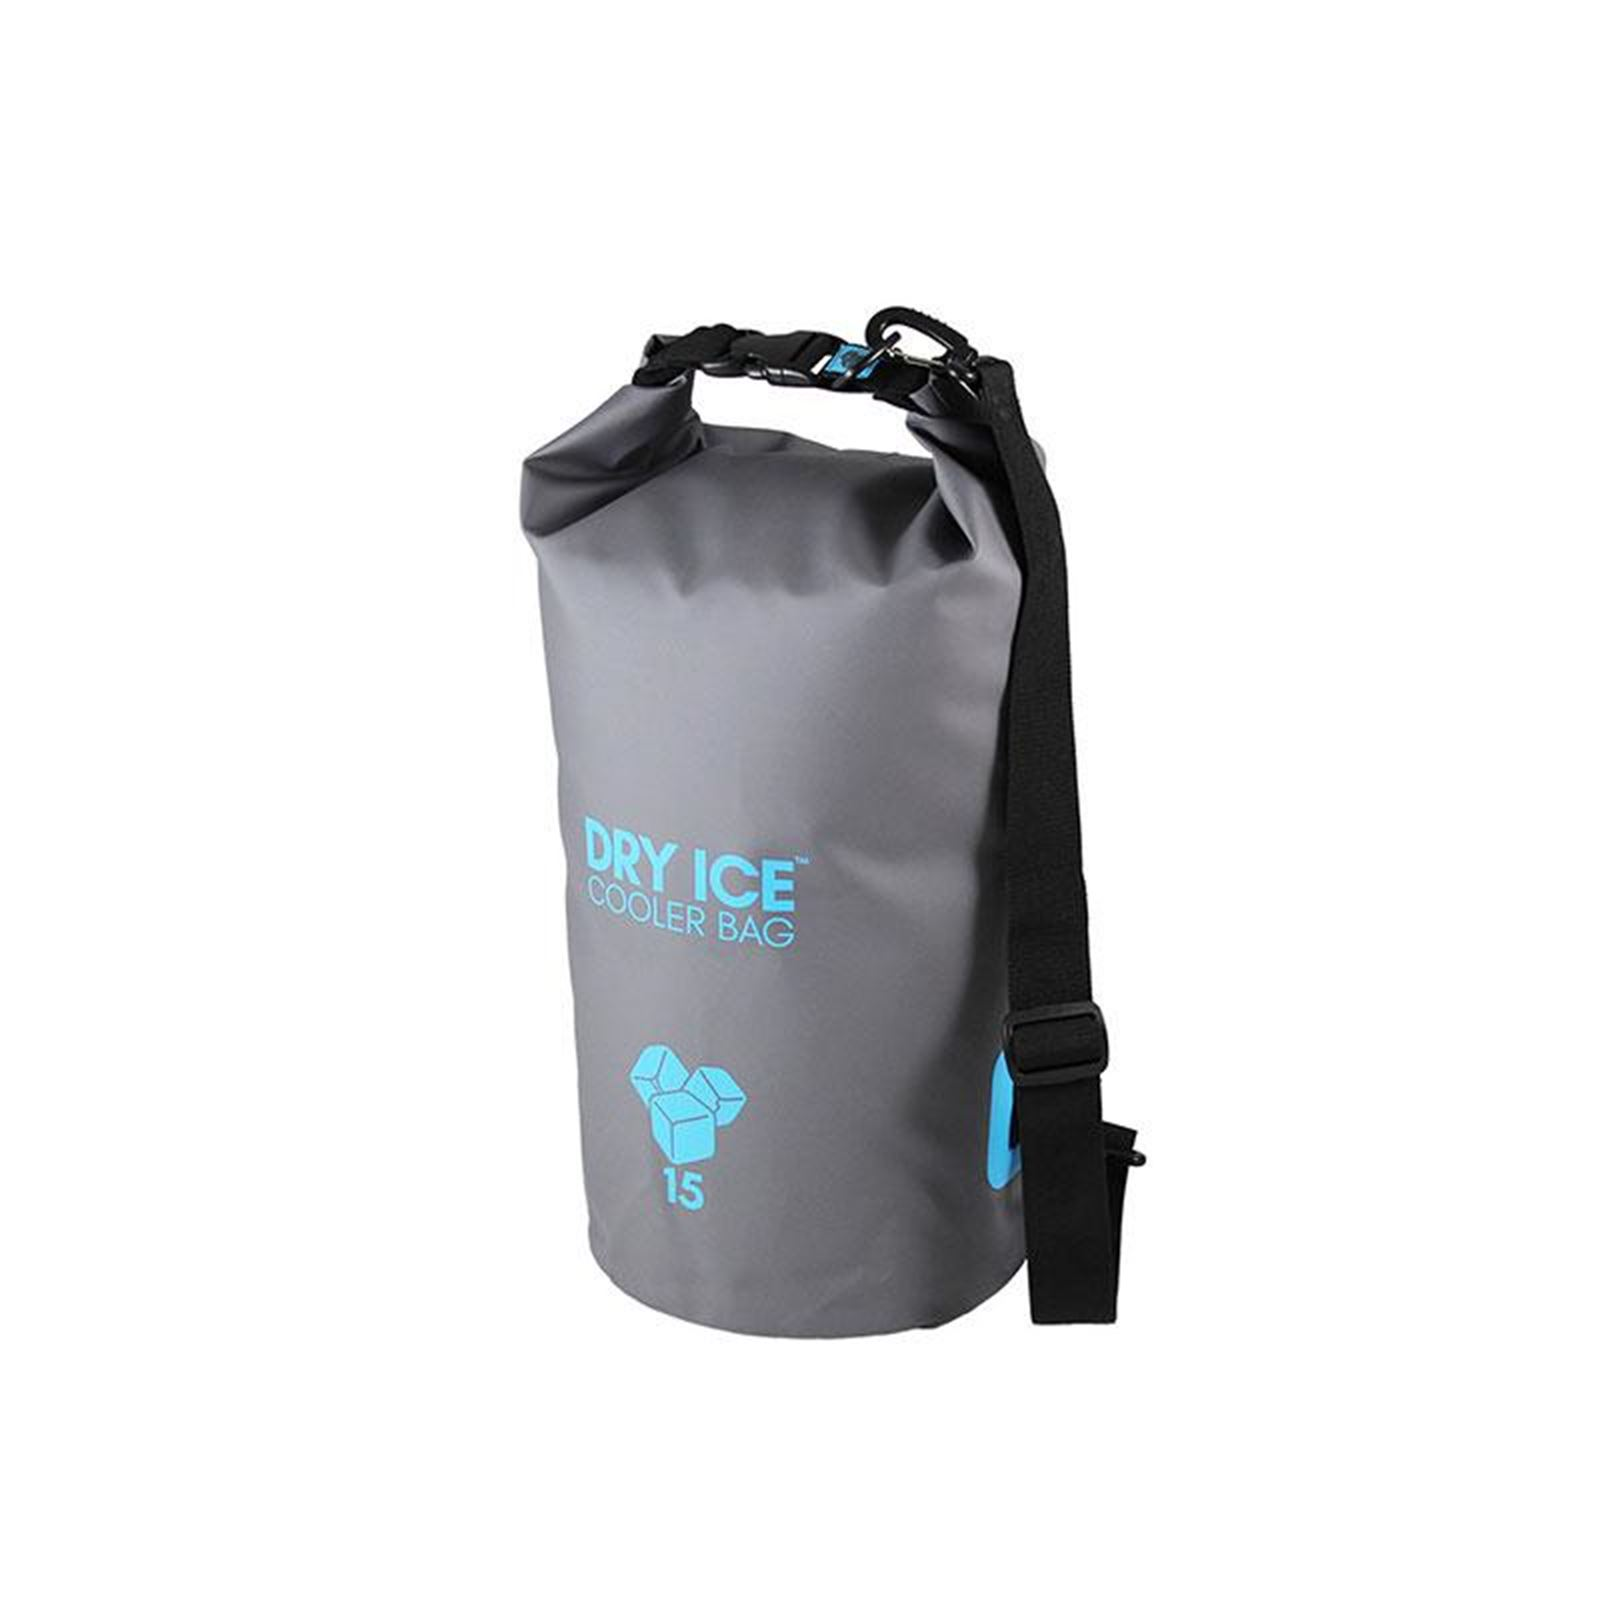 Dry Ice Cooler Bag 15 Lit - Gray